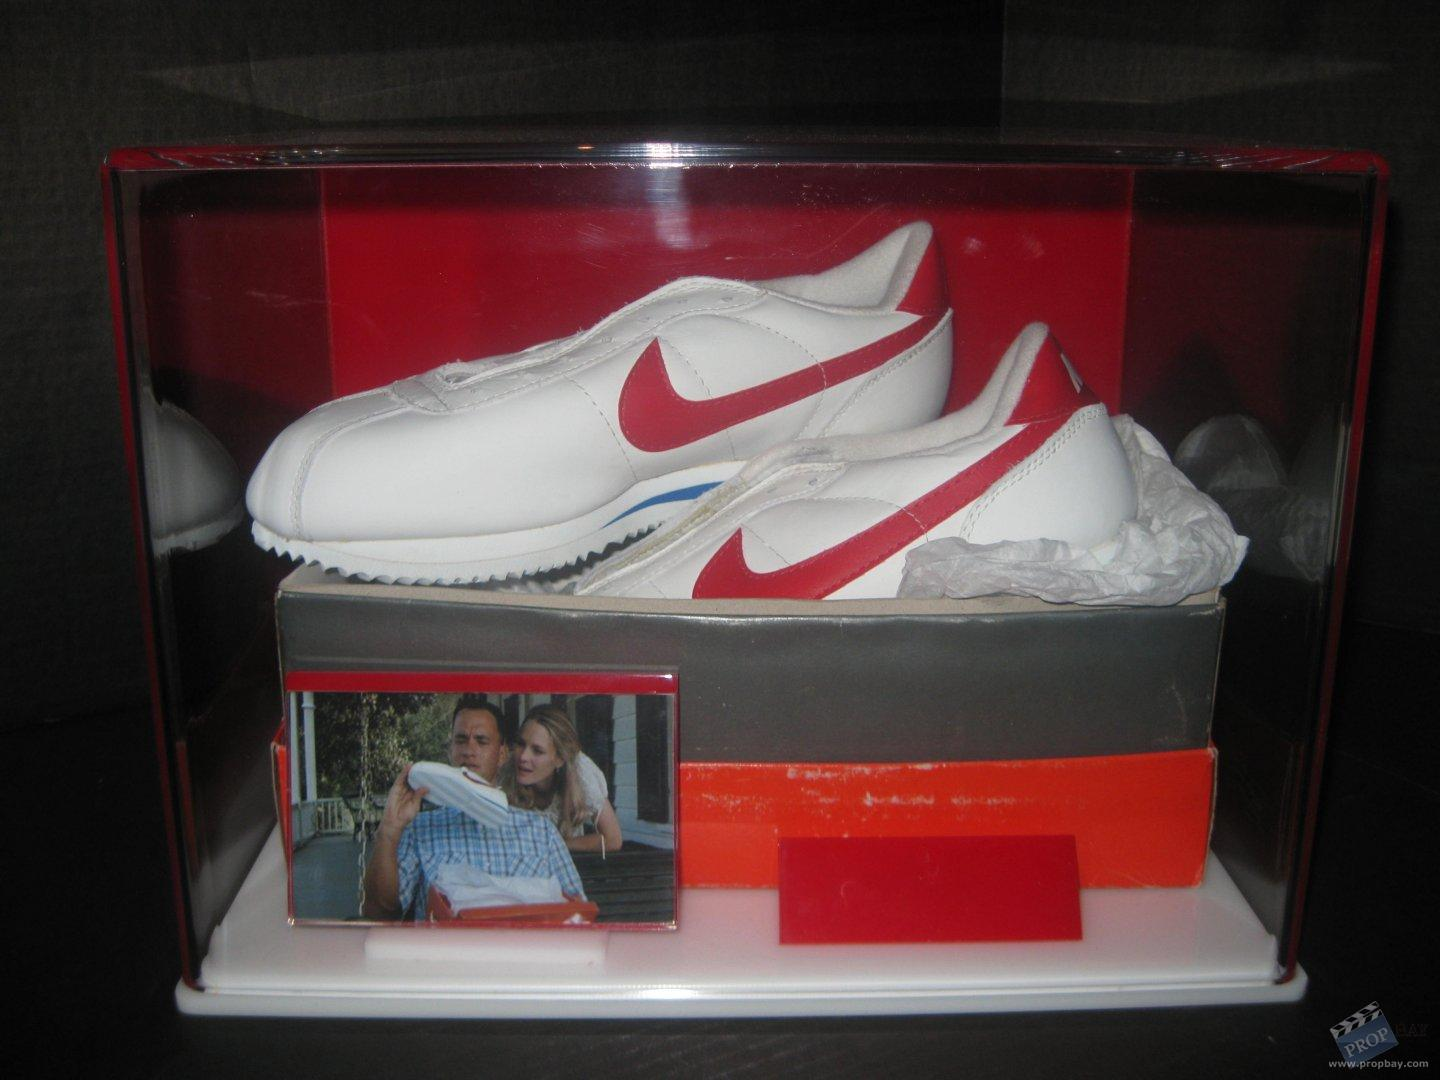 official photos 850ad fdbca Forrest Gump Prototype Gift Sneakers Movie Prop from Forrest ...